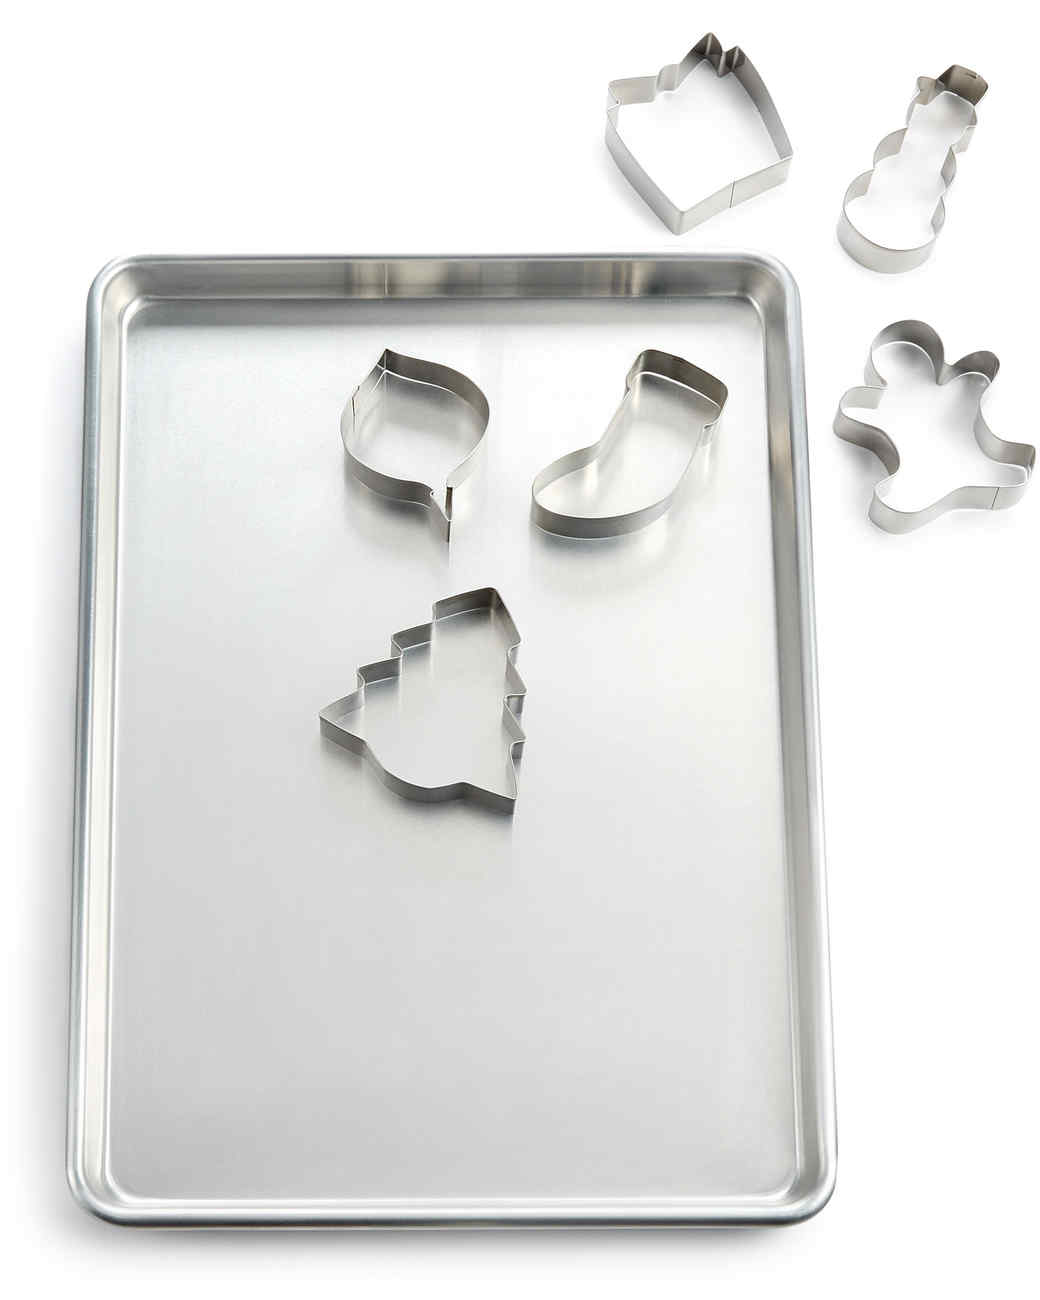 Macy's Christmas cookie cutters